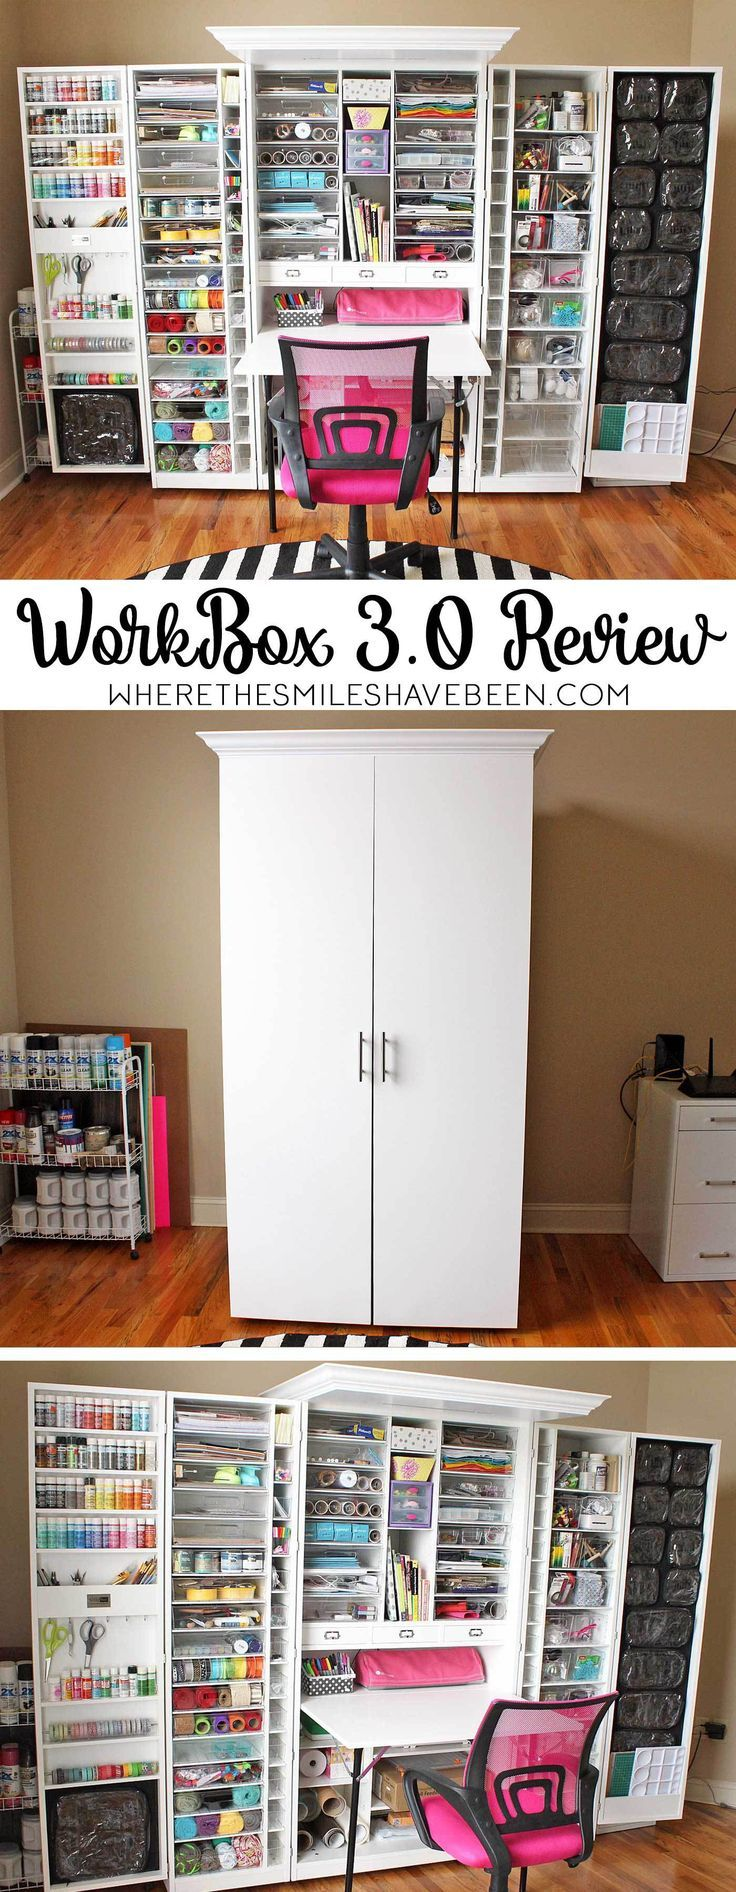 My WorkBox 3.0 Review: The Good, The Bad, & The WTF?!